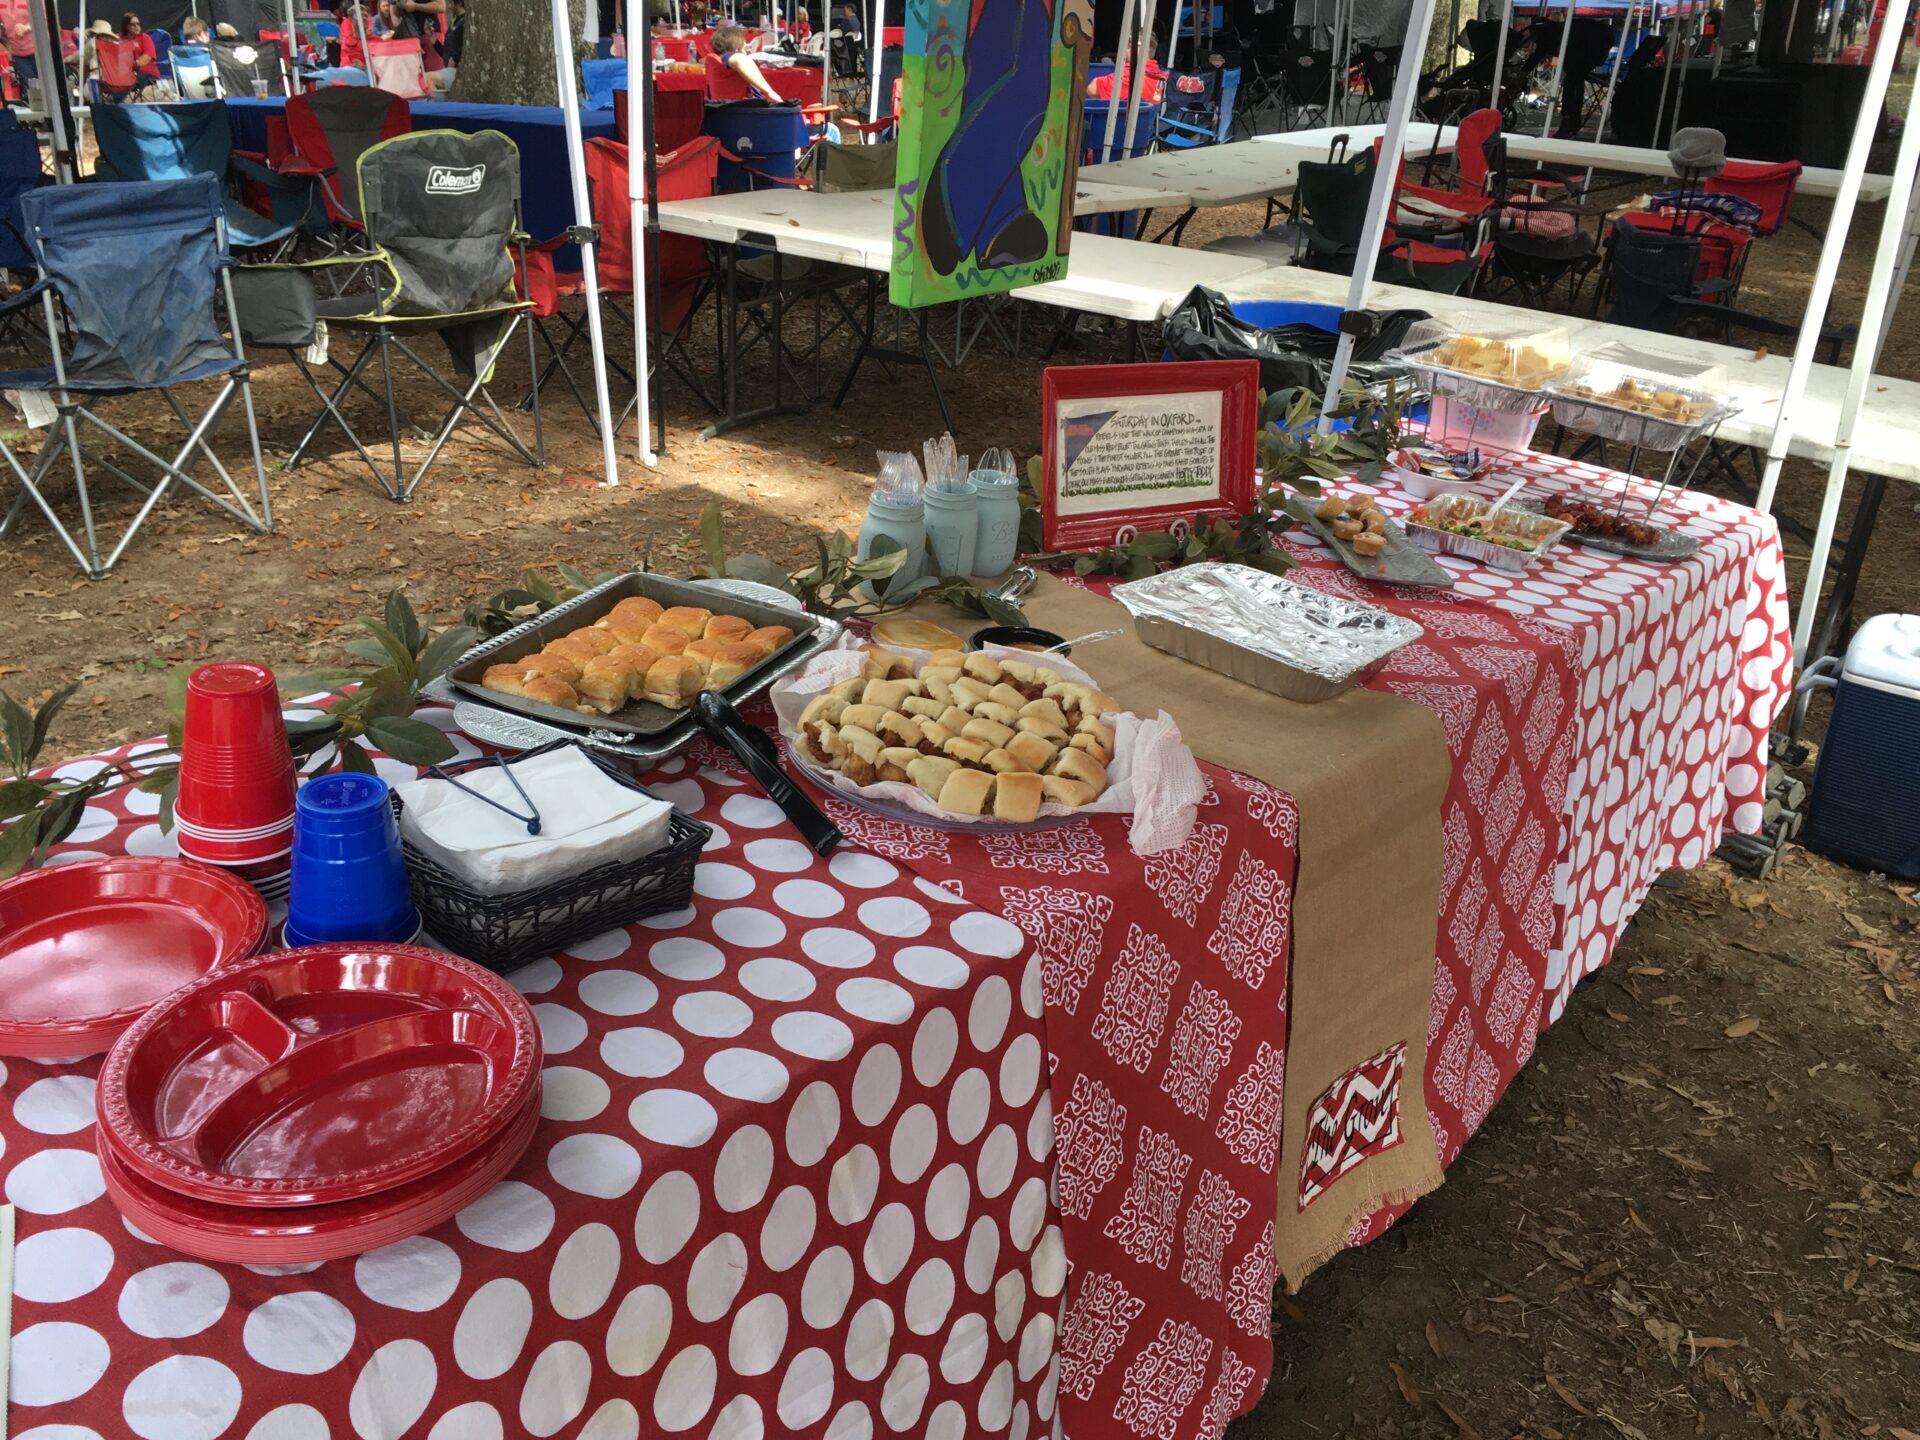 Ole miss tailgating traditions our 10 acres of heaven tent enjoy our previous tailgating traditions stories from this season arubaitofo Gallery